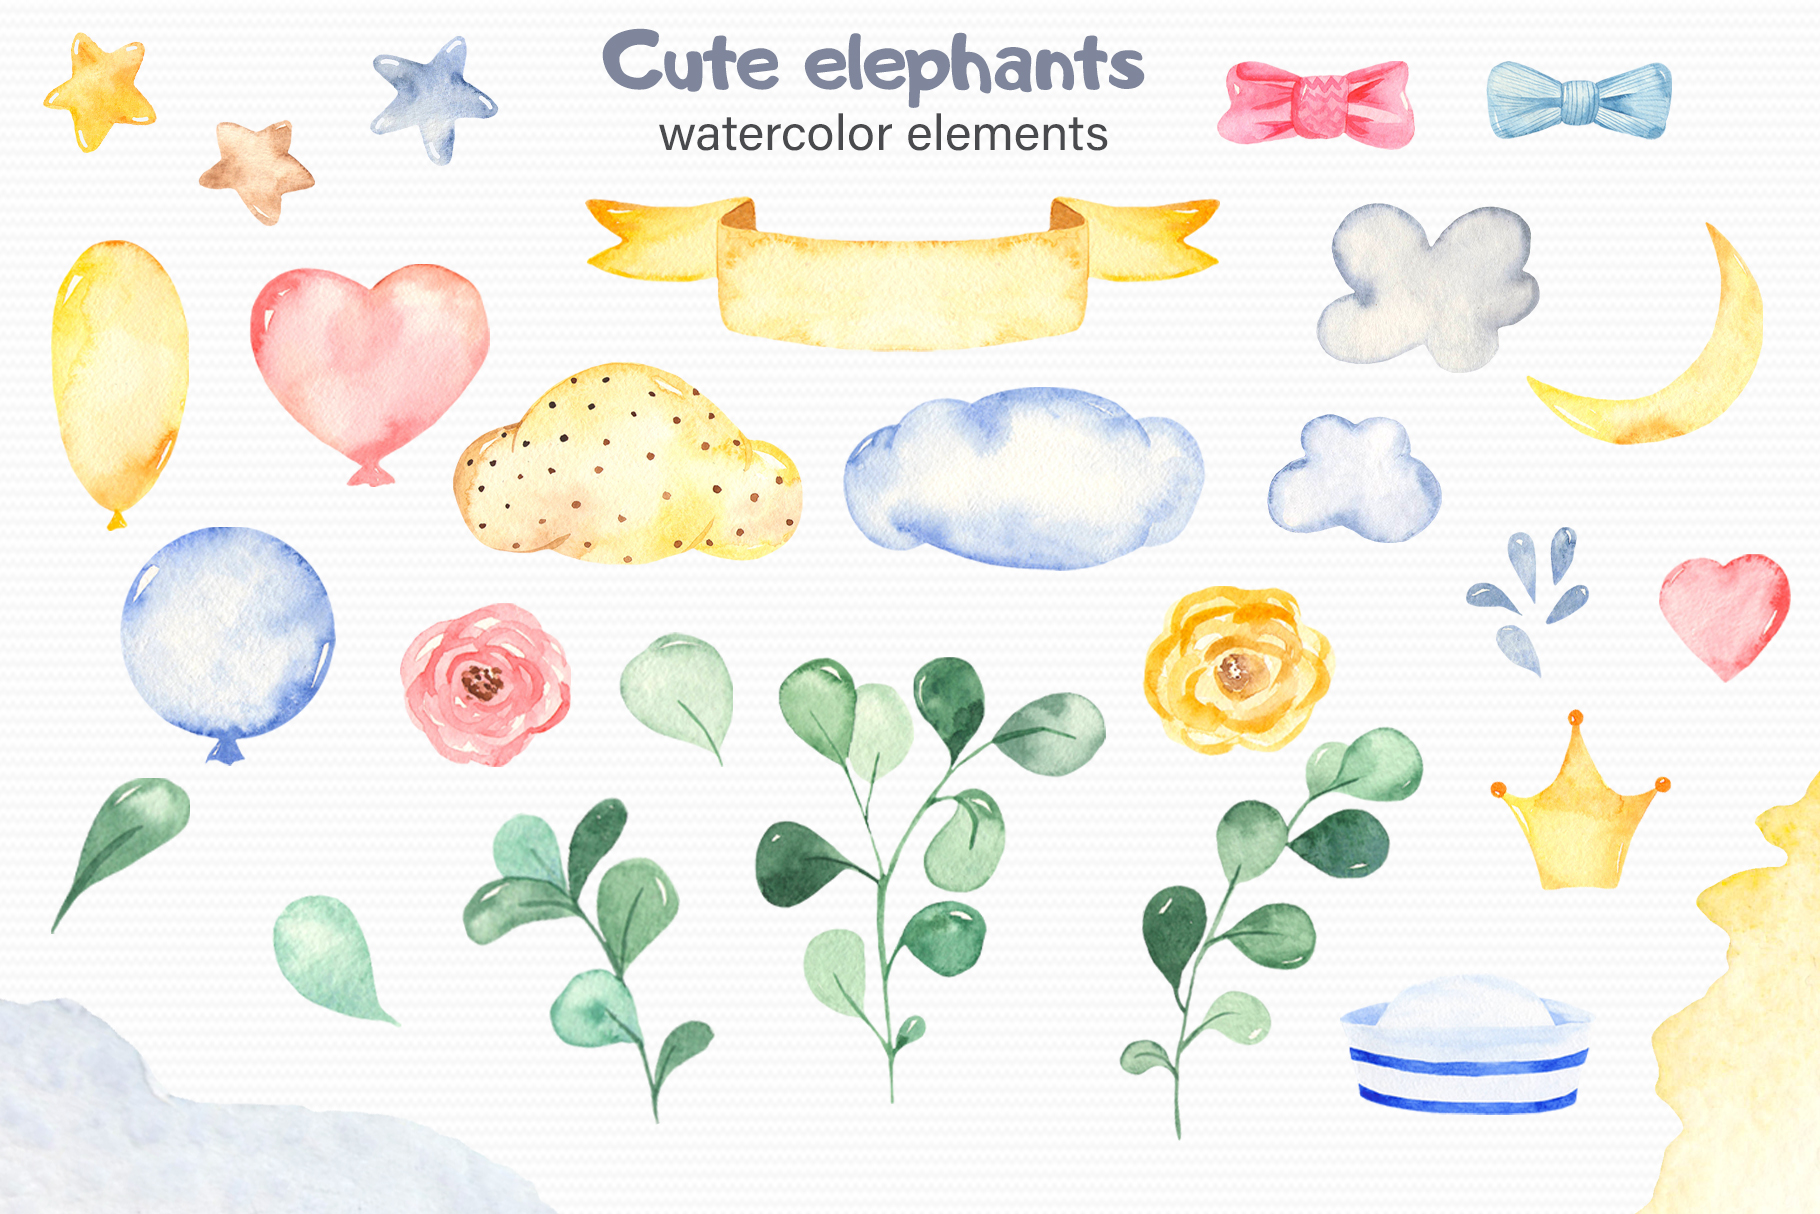 Cute elephants watercolor collection clipart example image 11